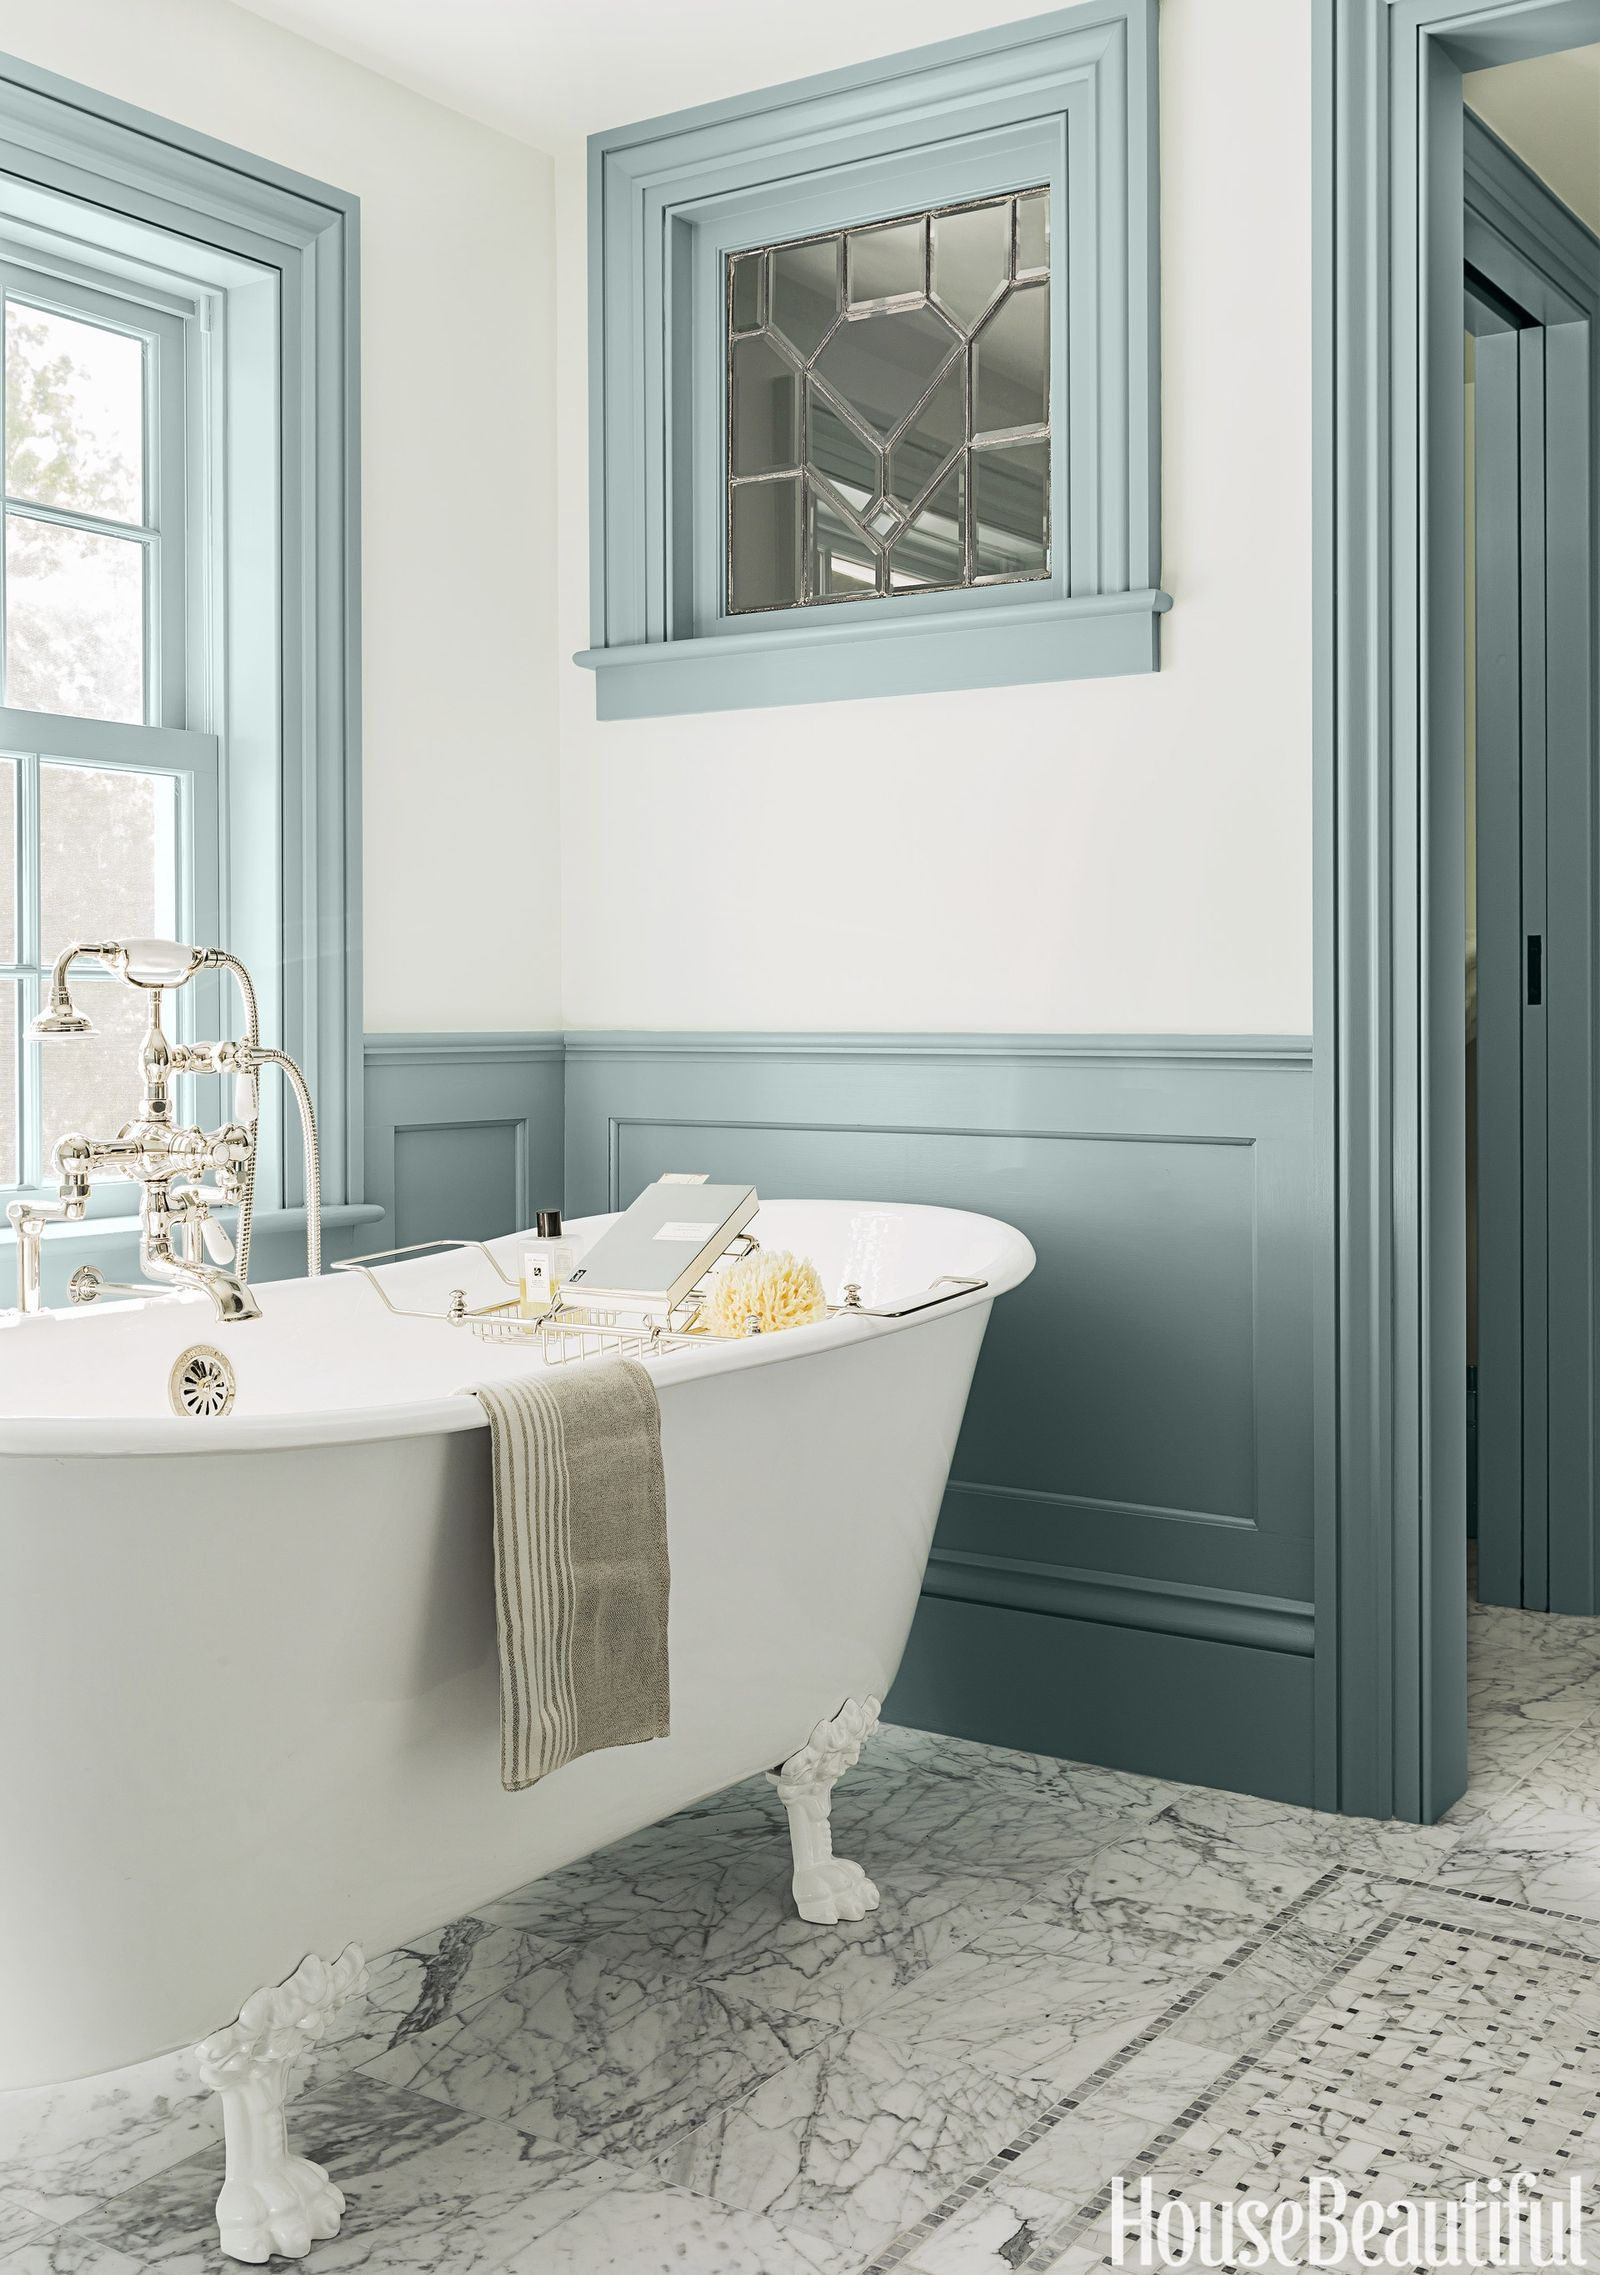 The Coolest Bathroom Tile Ideas You Need To Try | BEDROOM BLISS ...